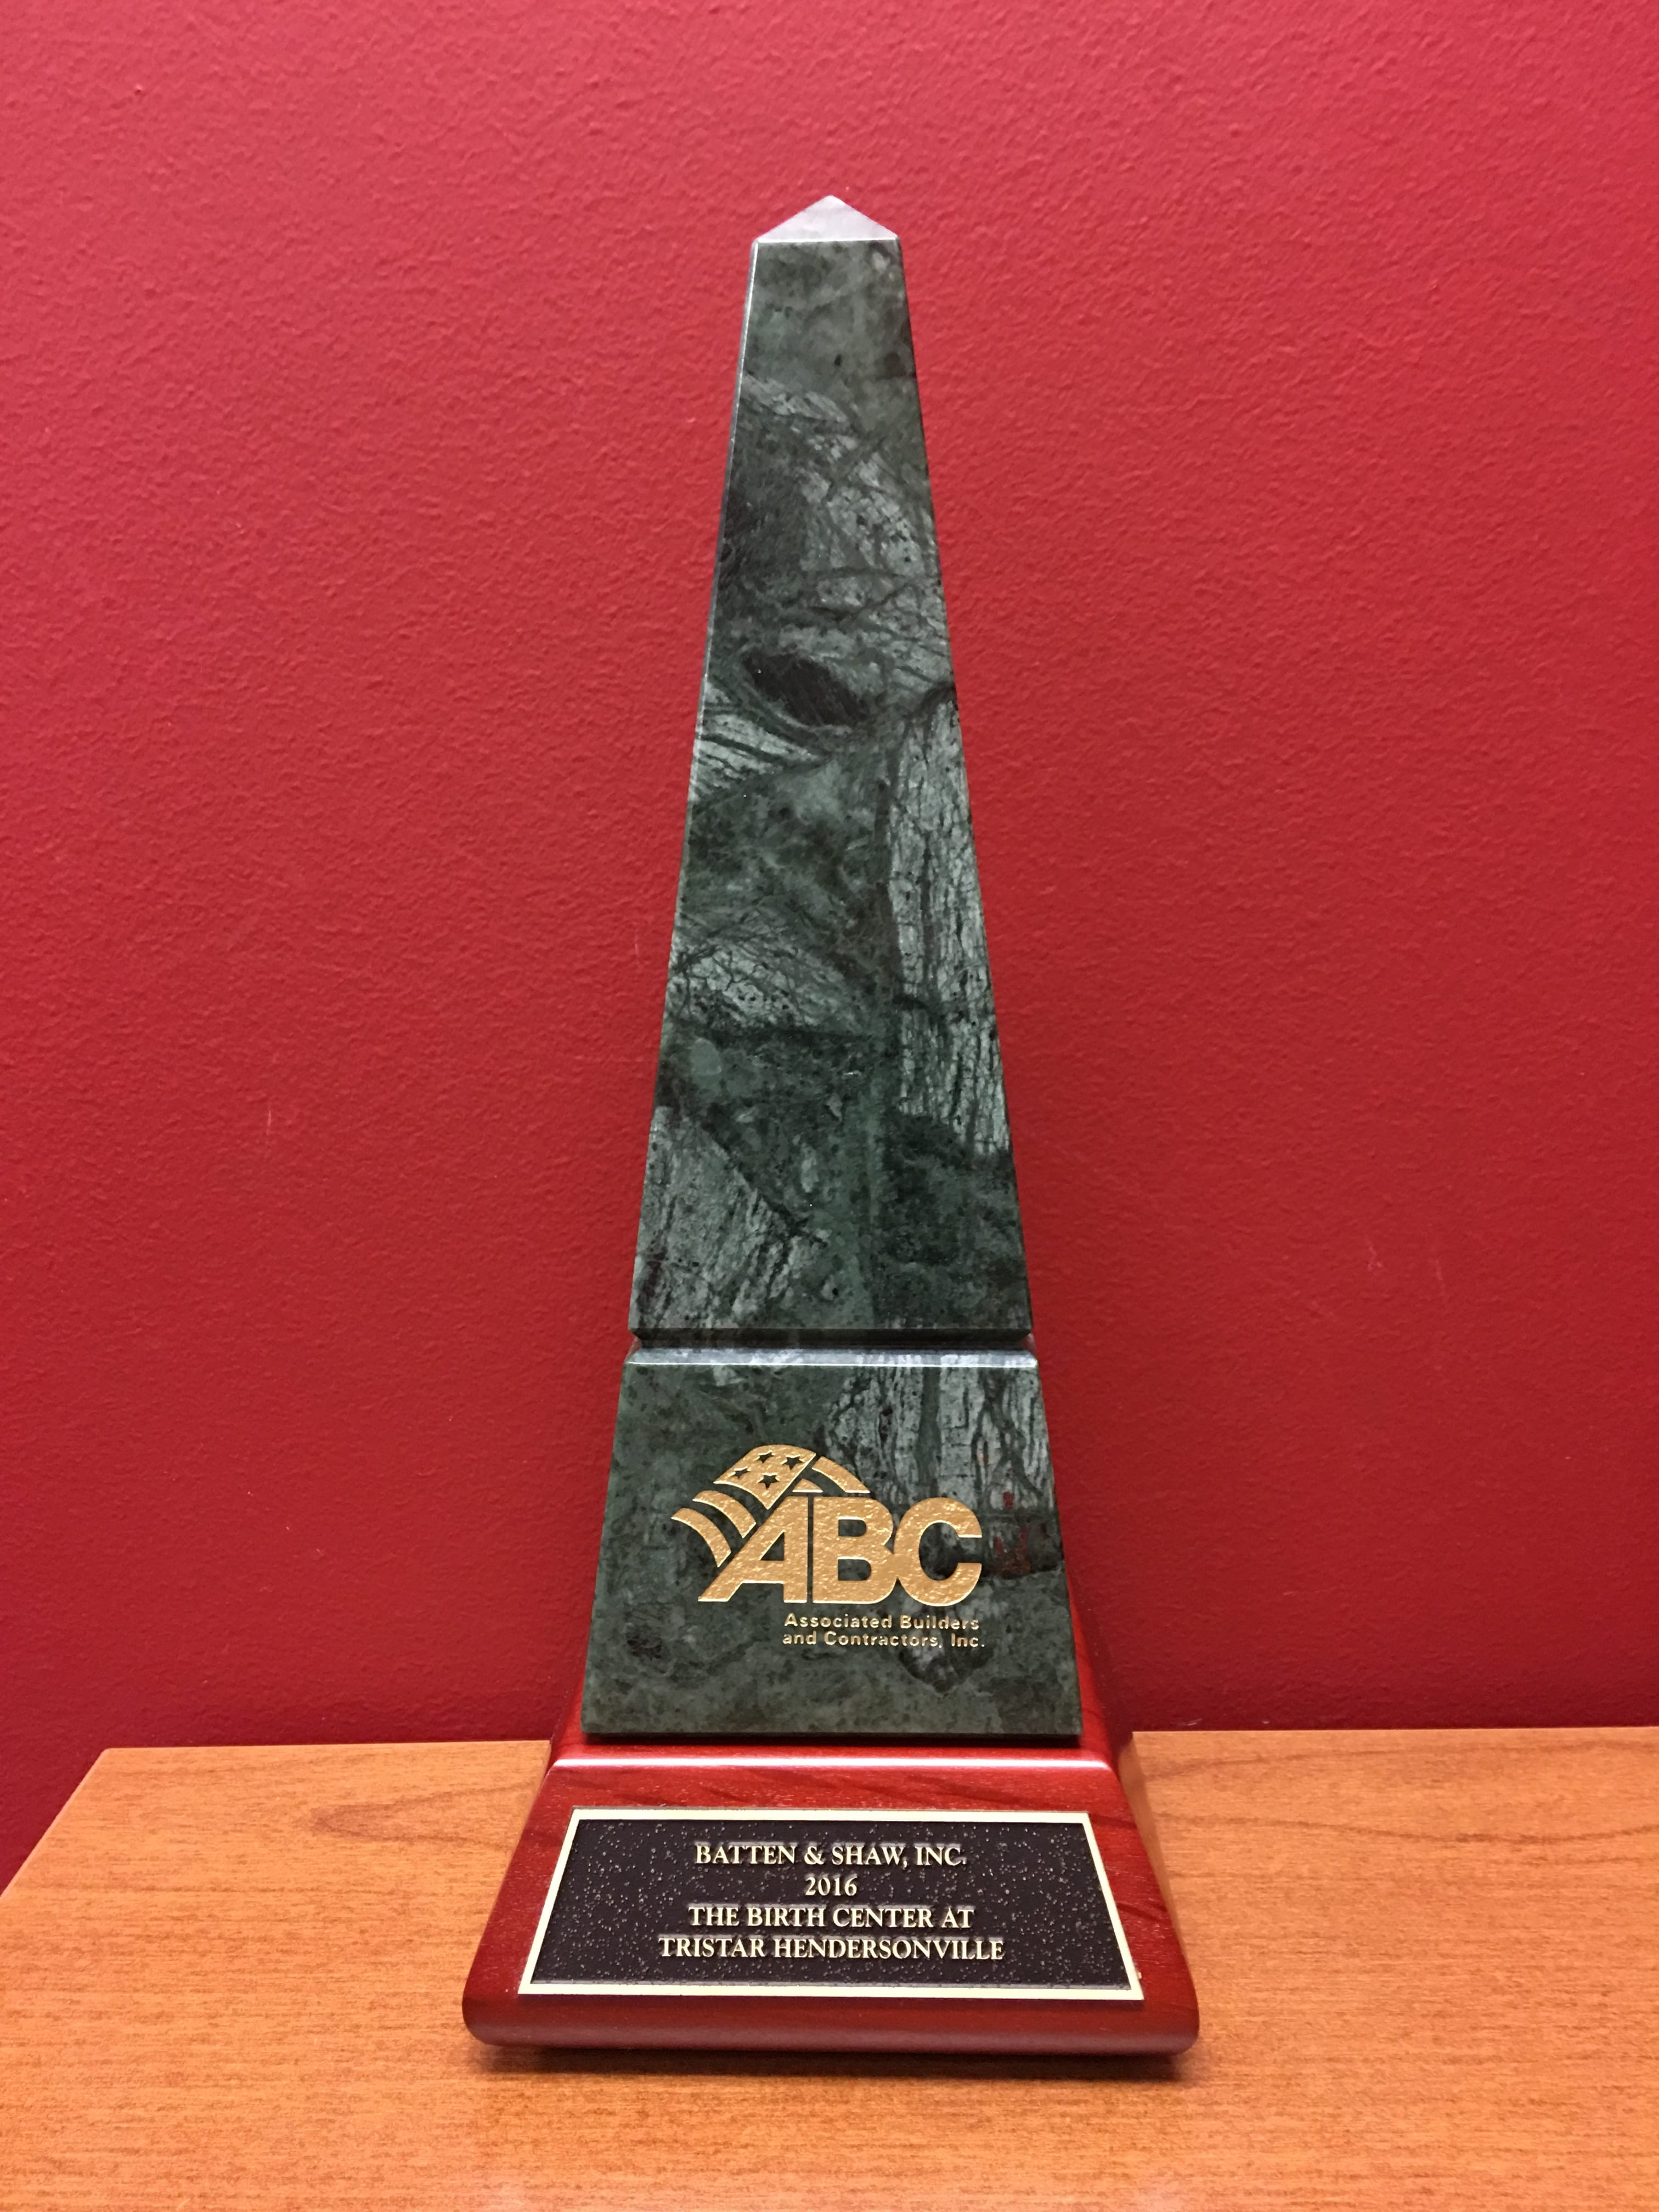 2016 ABC Award of Excellence The Birth Center